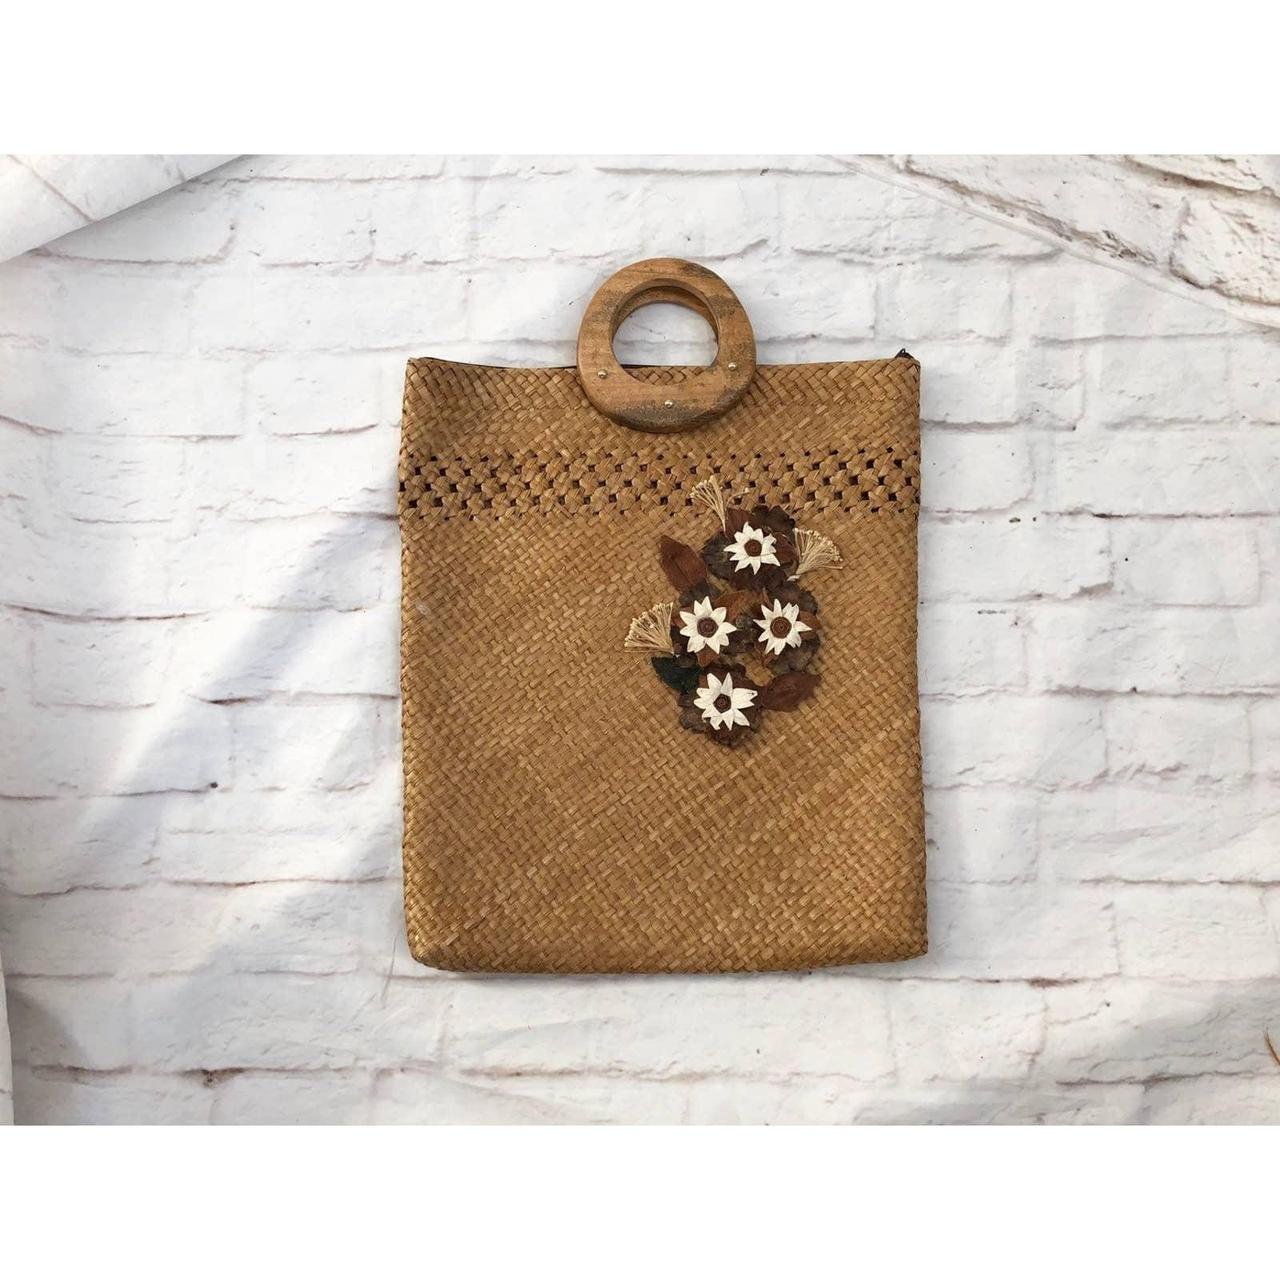 Product Image 1 - Vintage handmade woven straw tote